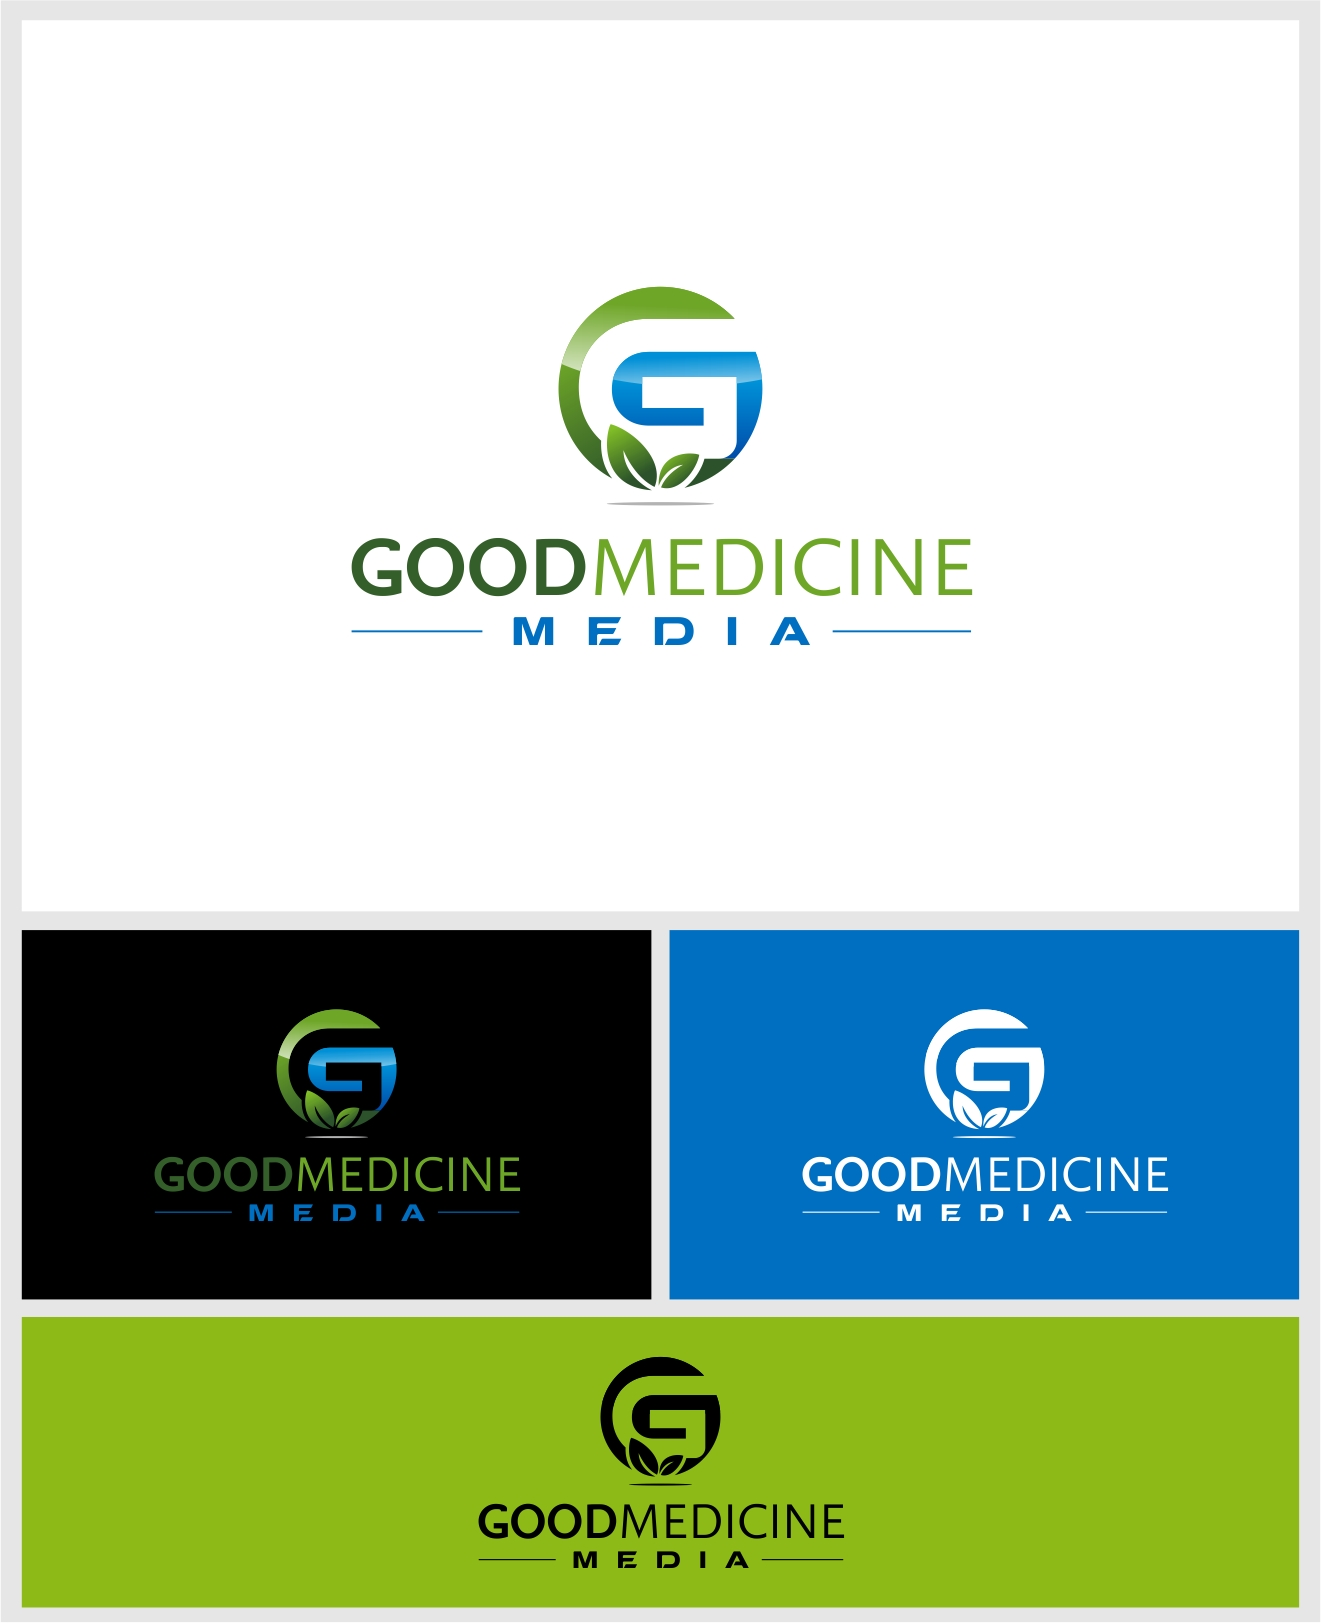 Logo Design by haidu - Entry No. 212 in the Logo Design Contest Good Medicine Media Logo Design.